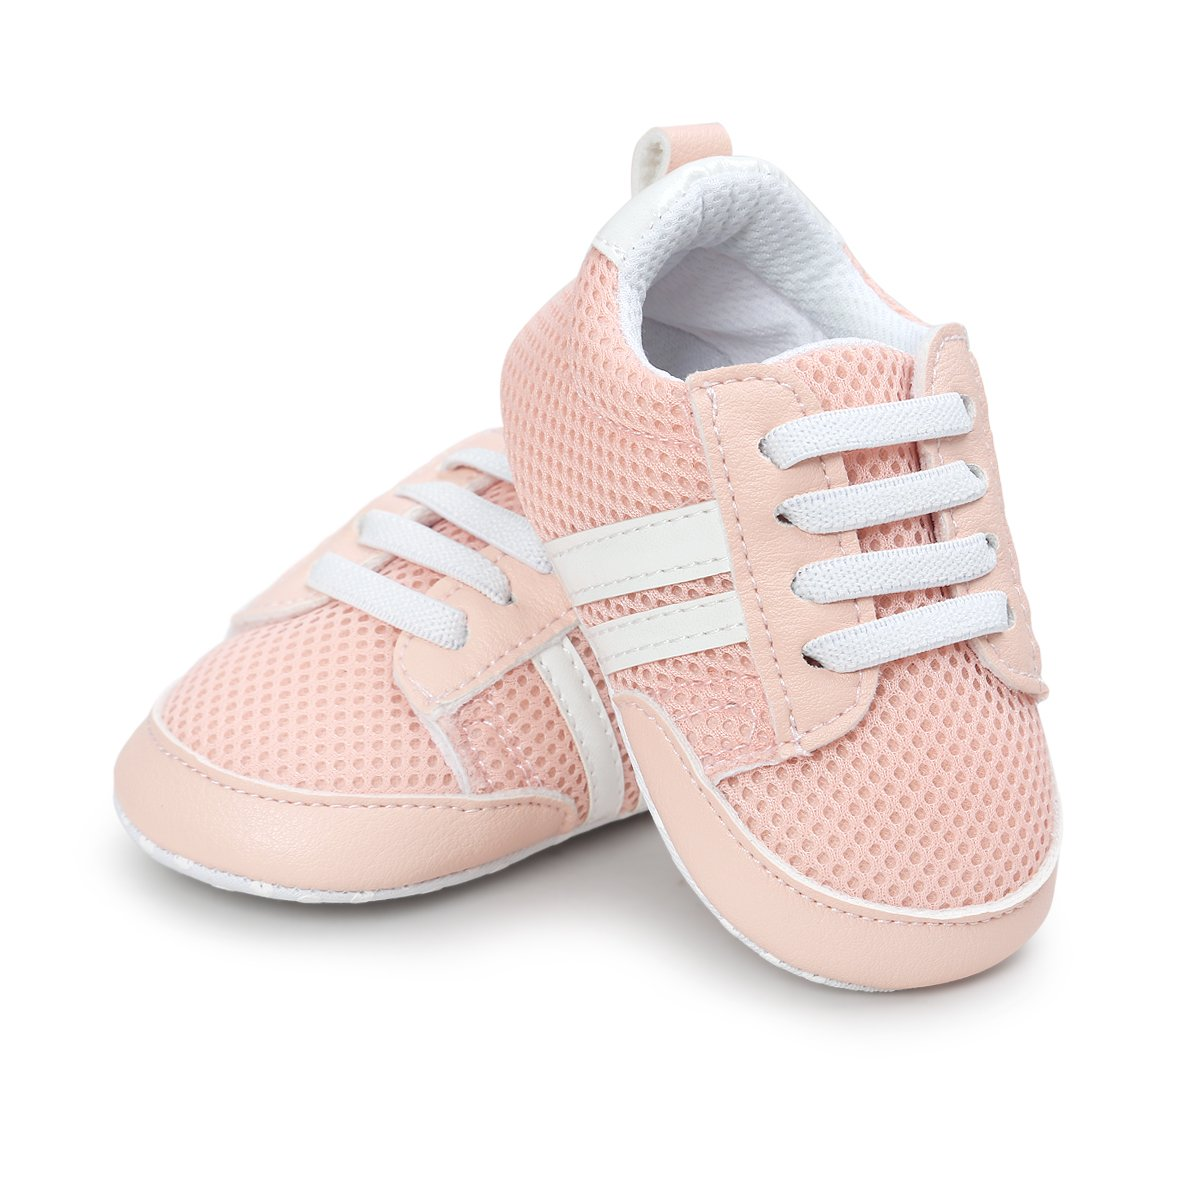 Save Beautiful Air Mesh Baby Shoes - Infant Boys Girls Summer Net Sneakers Crib Shoes (4.33inches(0-6months), style(A)pink1)